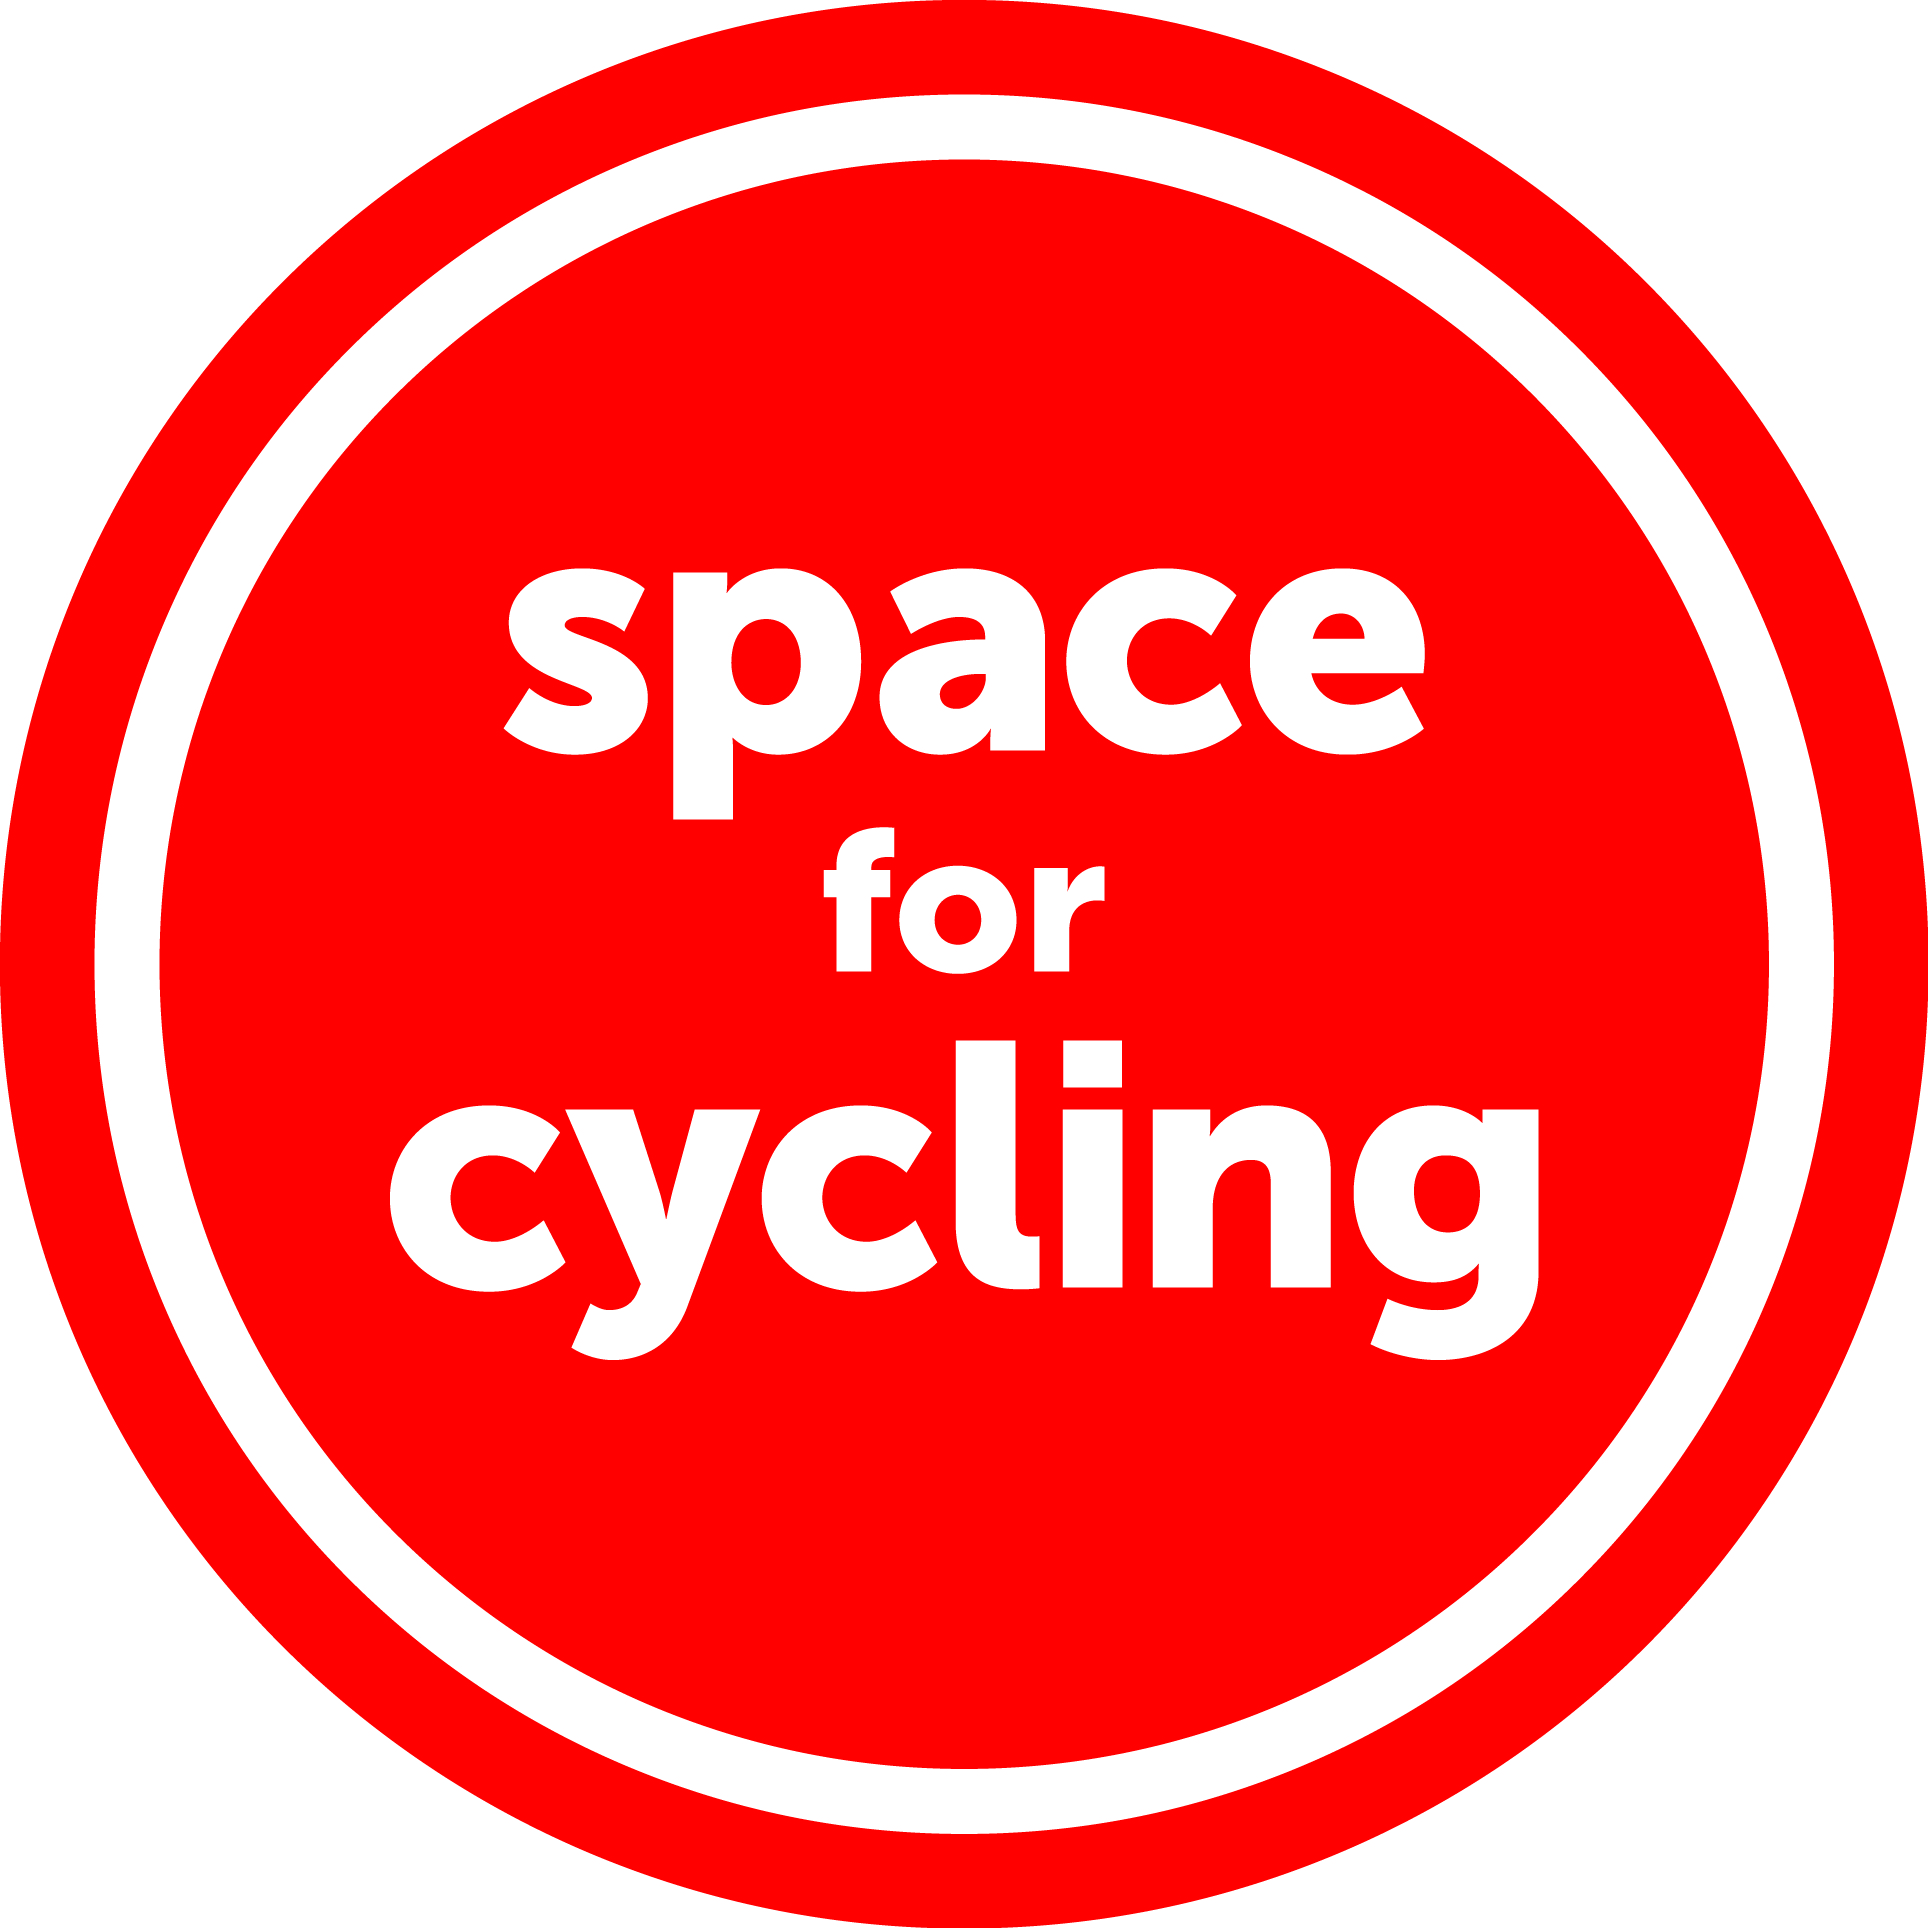 spaceforcycling